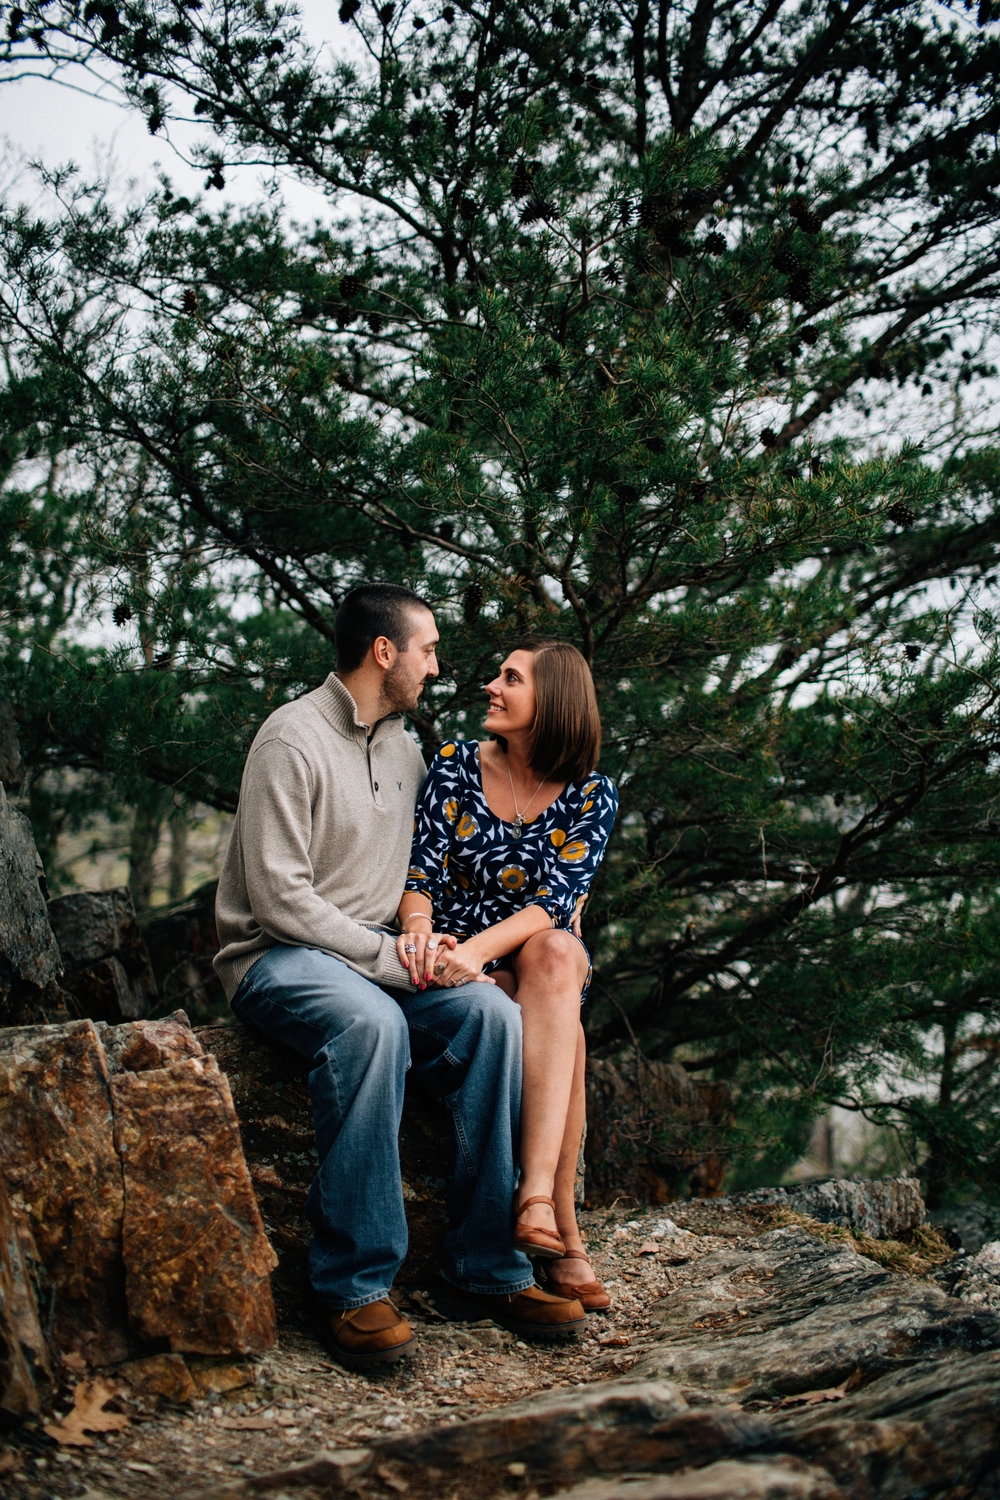 RACHELandZACHengagement2015-2 (39 of 81)-Exposure.jpg